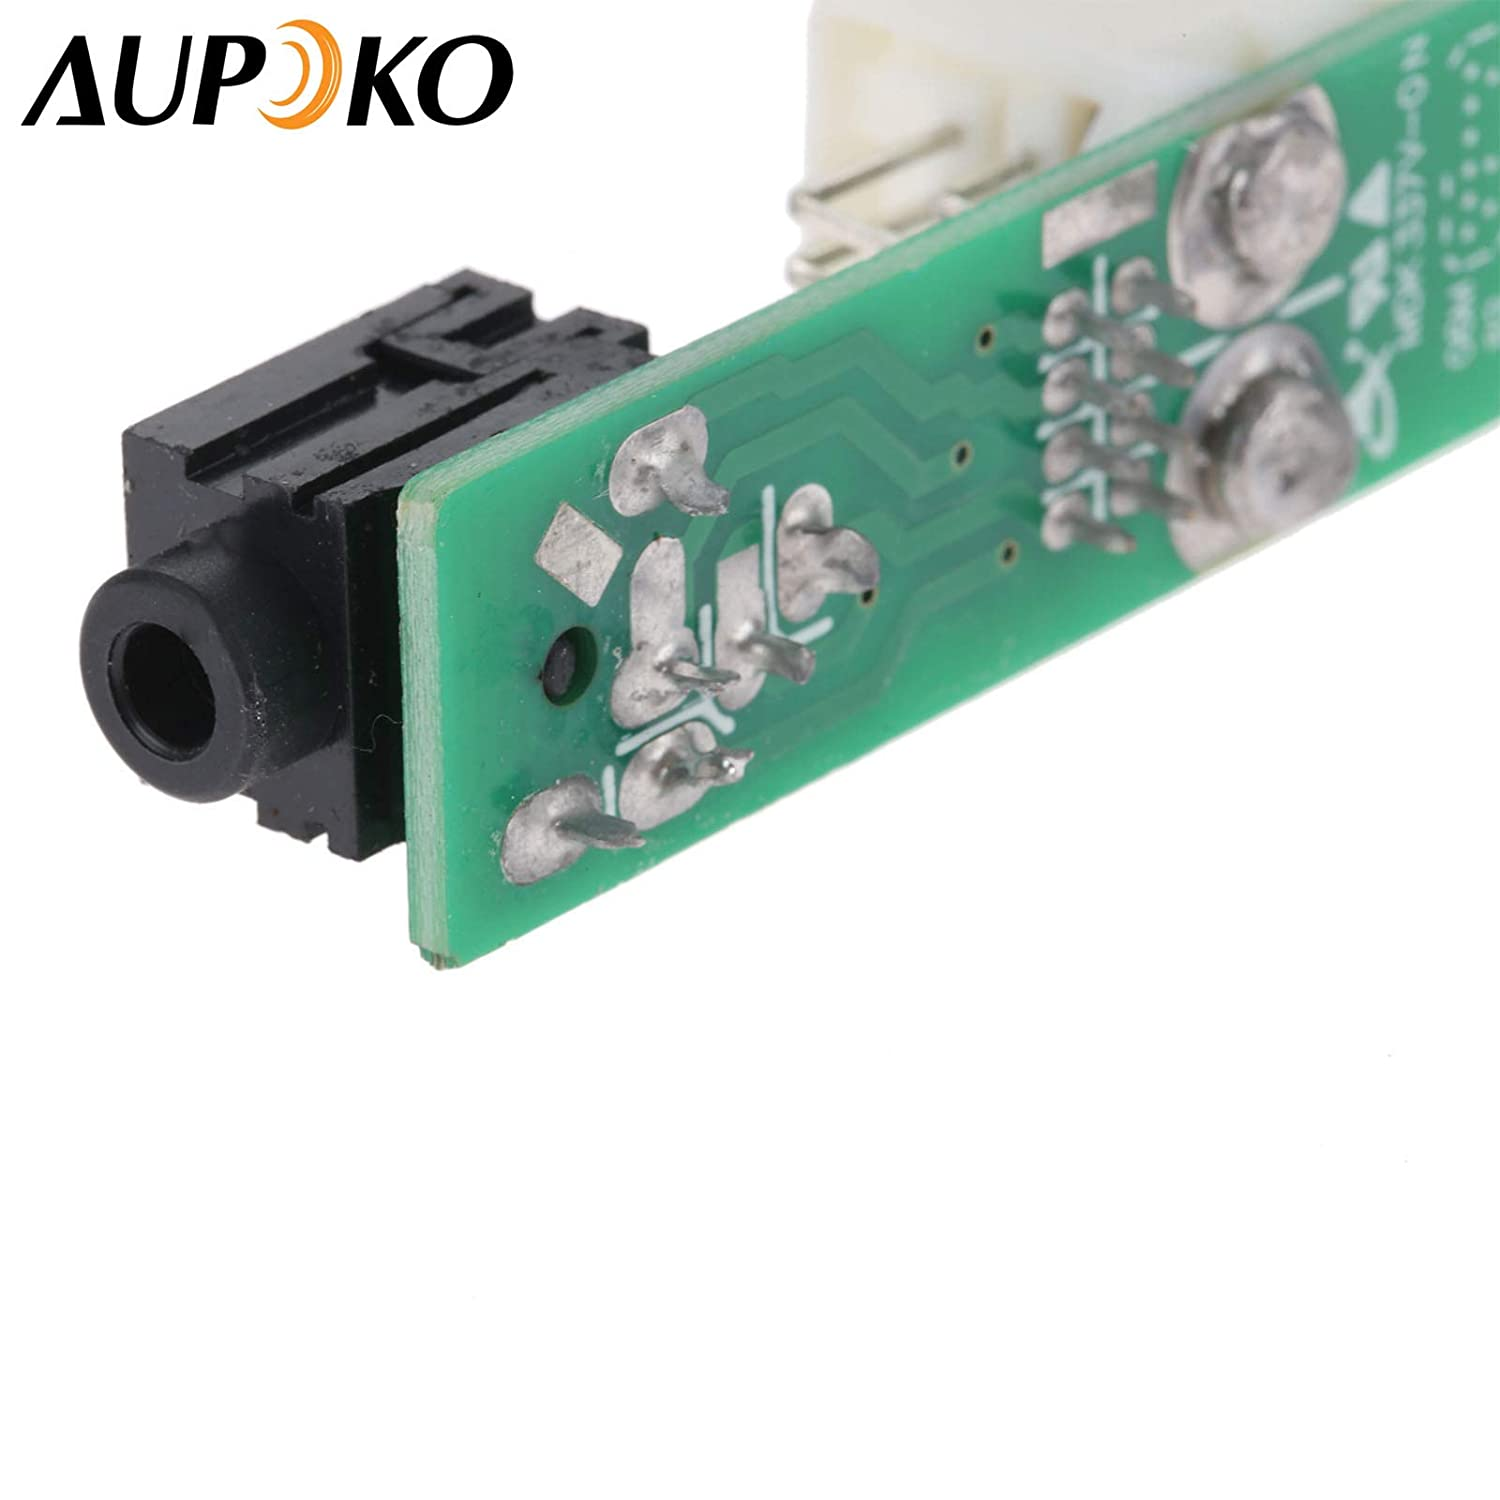 Aupoko 86190-02010 86190-02020 Aux Stereo Adapter Auxiliary Input Jack Replacement Audio Assembly Fits for Toyota Tundra Radio Camry Matrix Corolla Tacoma Highlander RAV4 Sienna